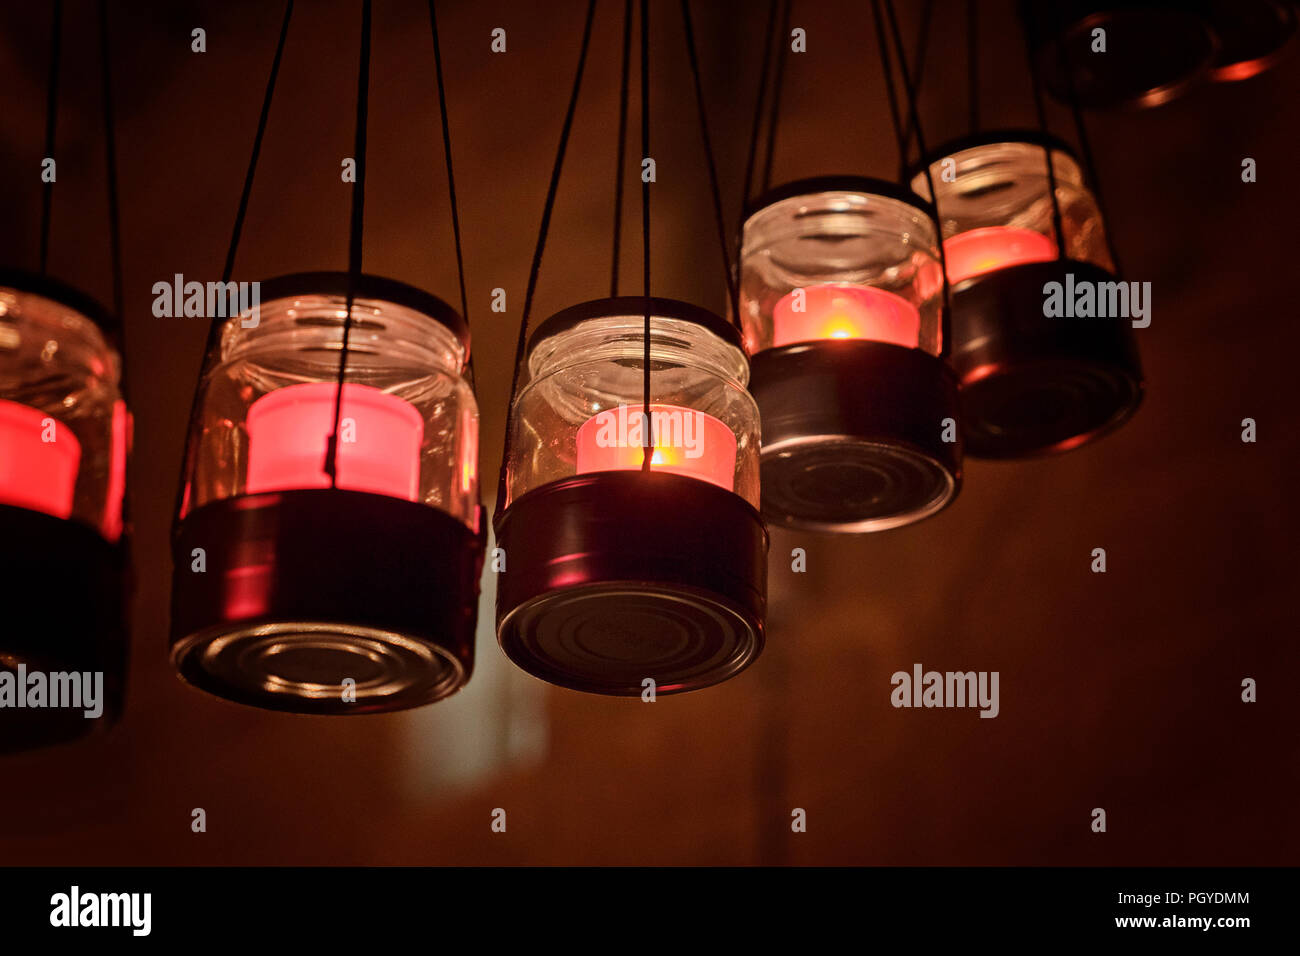 Hanging candlesticks jars with burning candles. Cozy and hygge concept - Stock Image